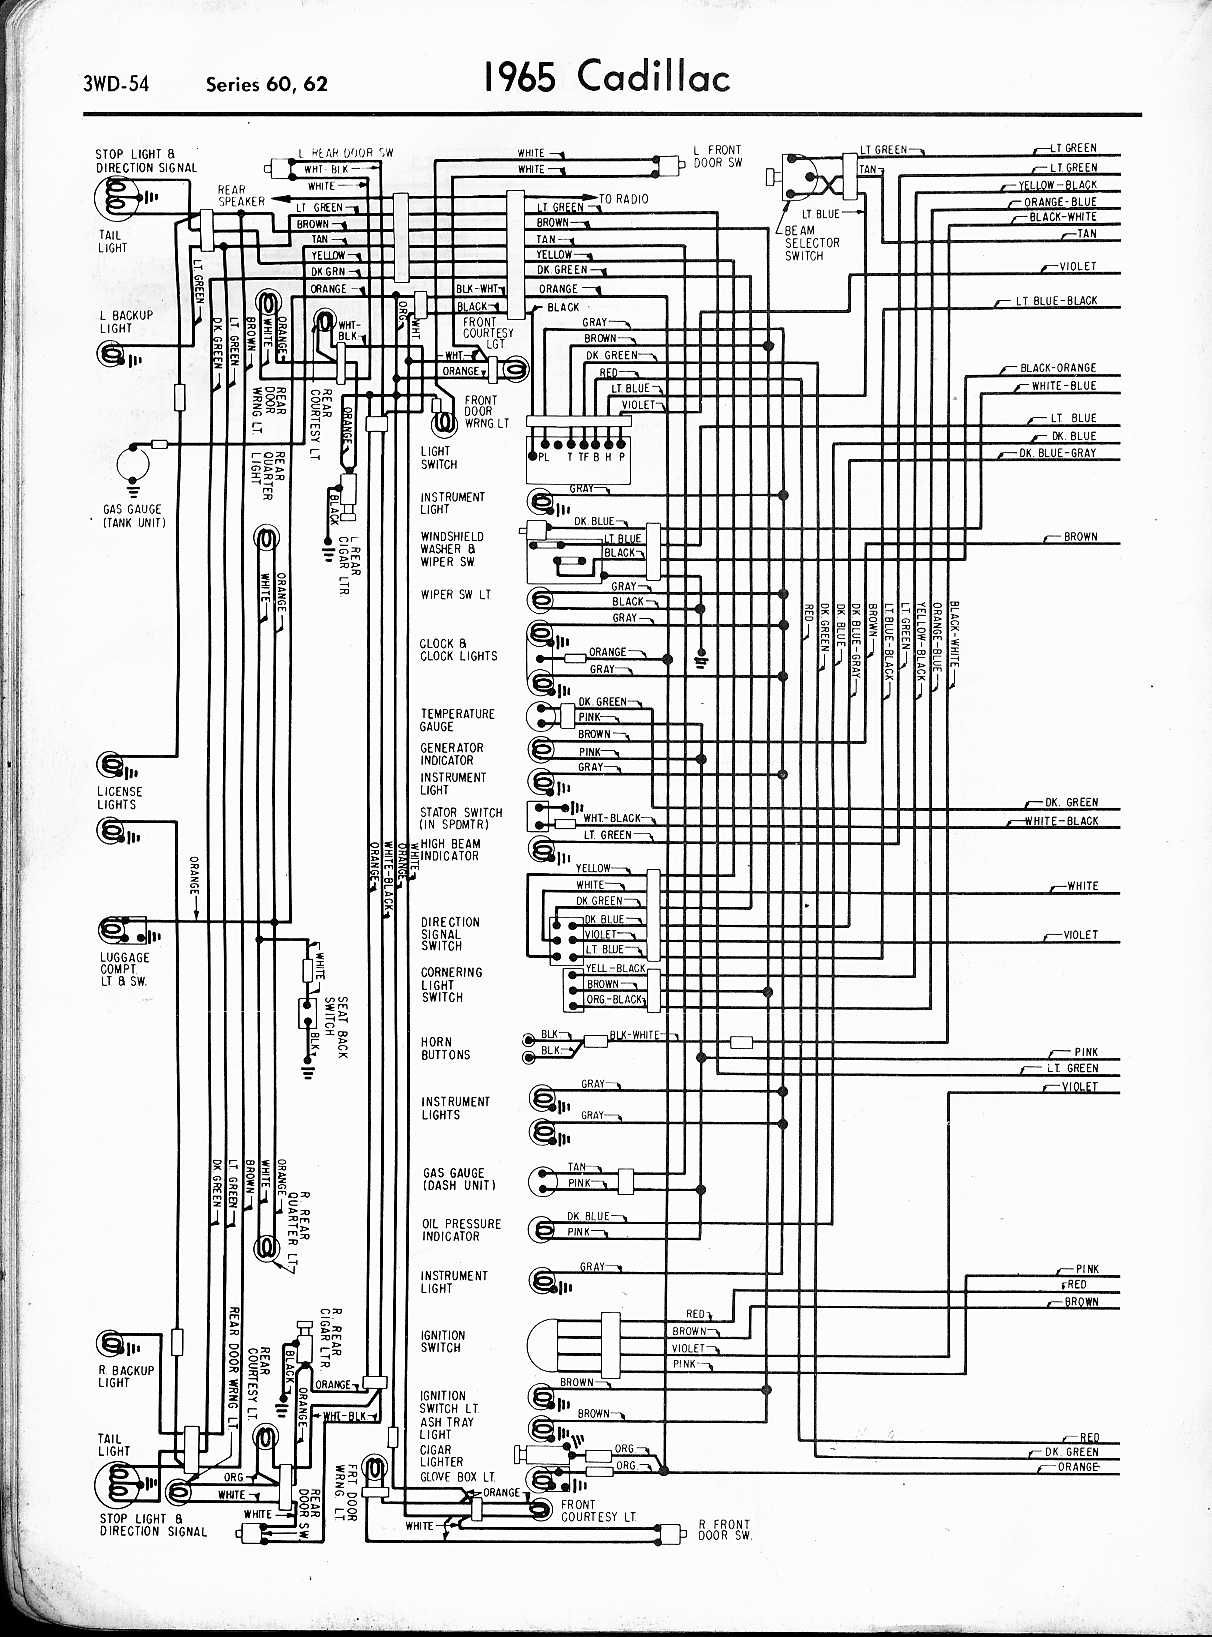 i have a 1965 cadillac convertible with power windows. the ... radio wiring diagram for 2008 v6 ford mustang #3